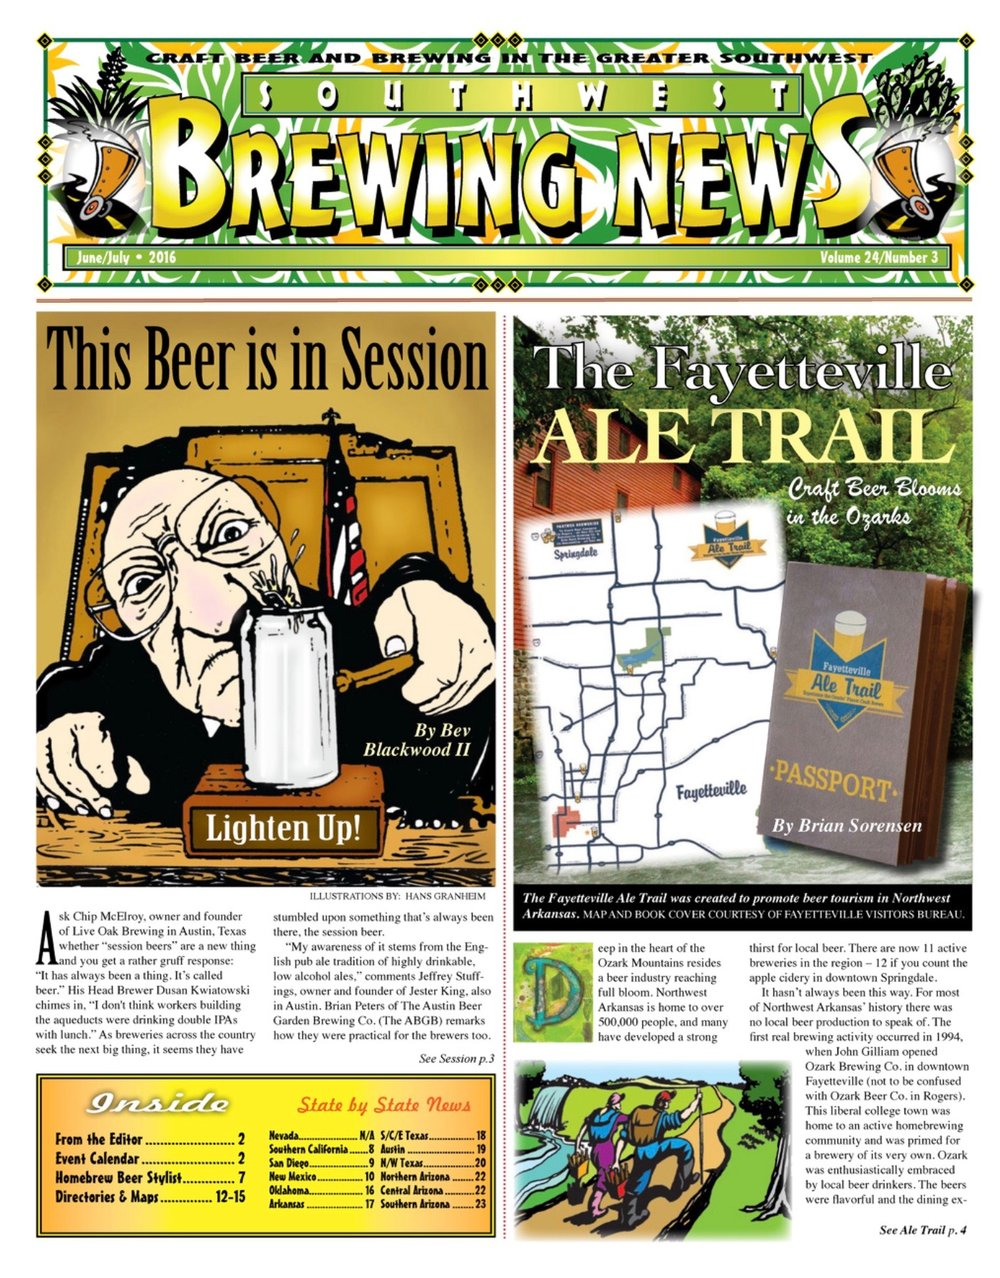 I wrote about the Fayetteville Ale Trail in the June/July 2016 issue. Scott Parton was the Arkansas correspondent back then.